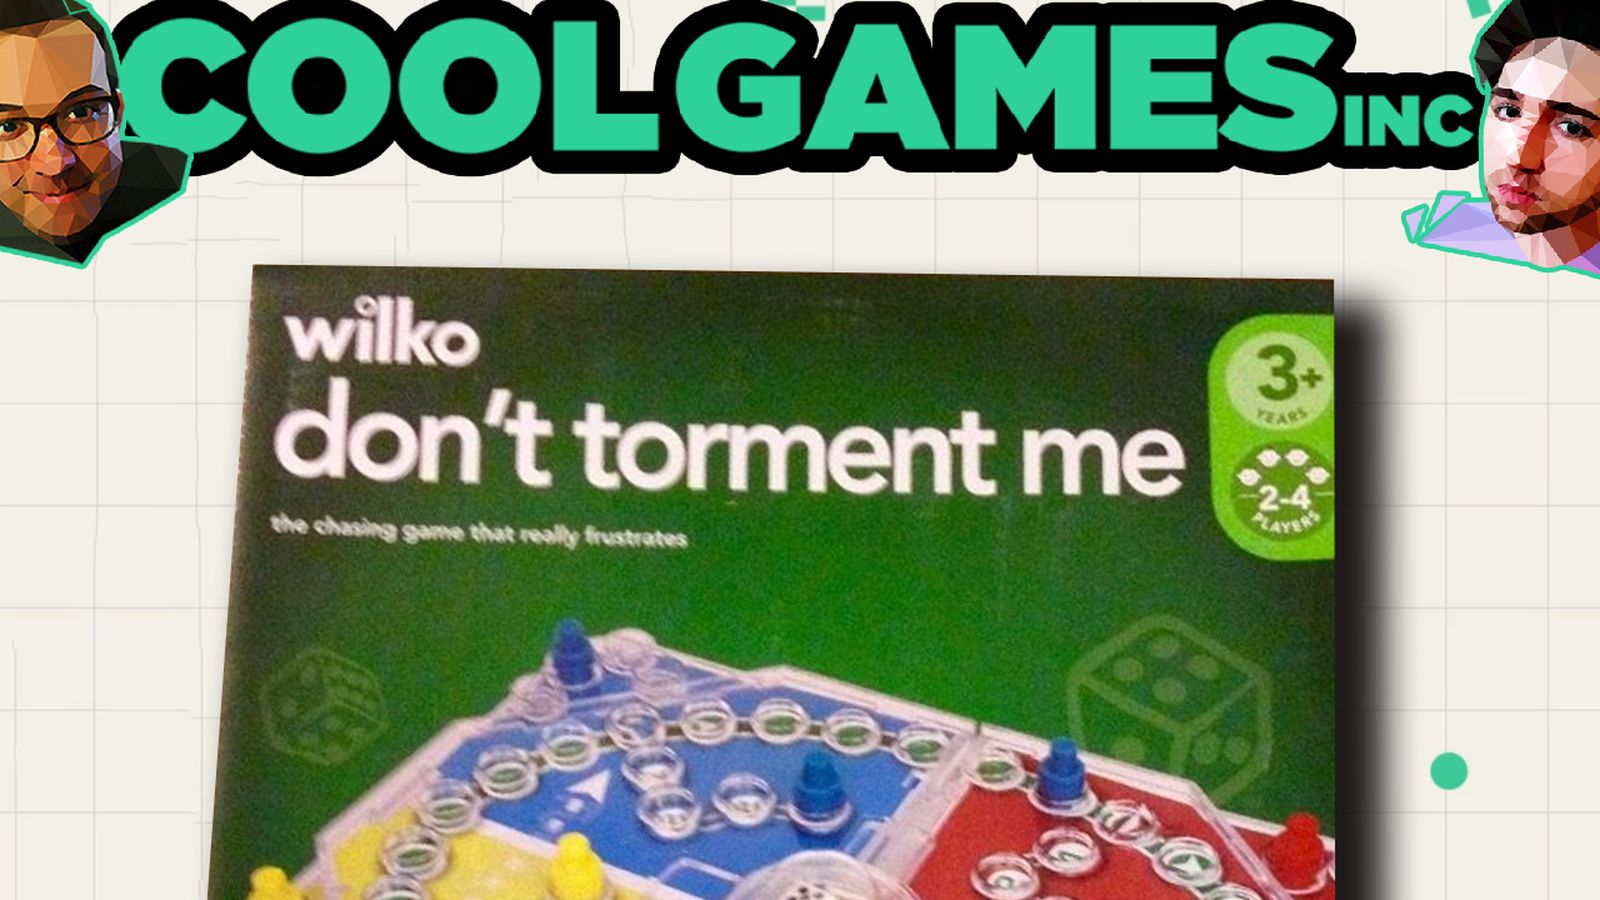 CoolGames Inc Animated: Why is there a board game called 'Don't Torment Me'?